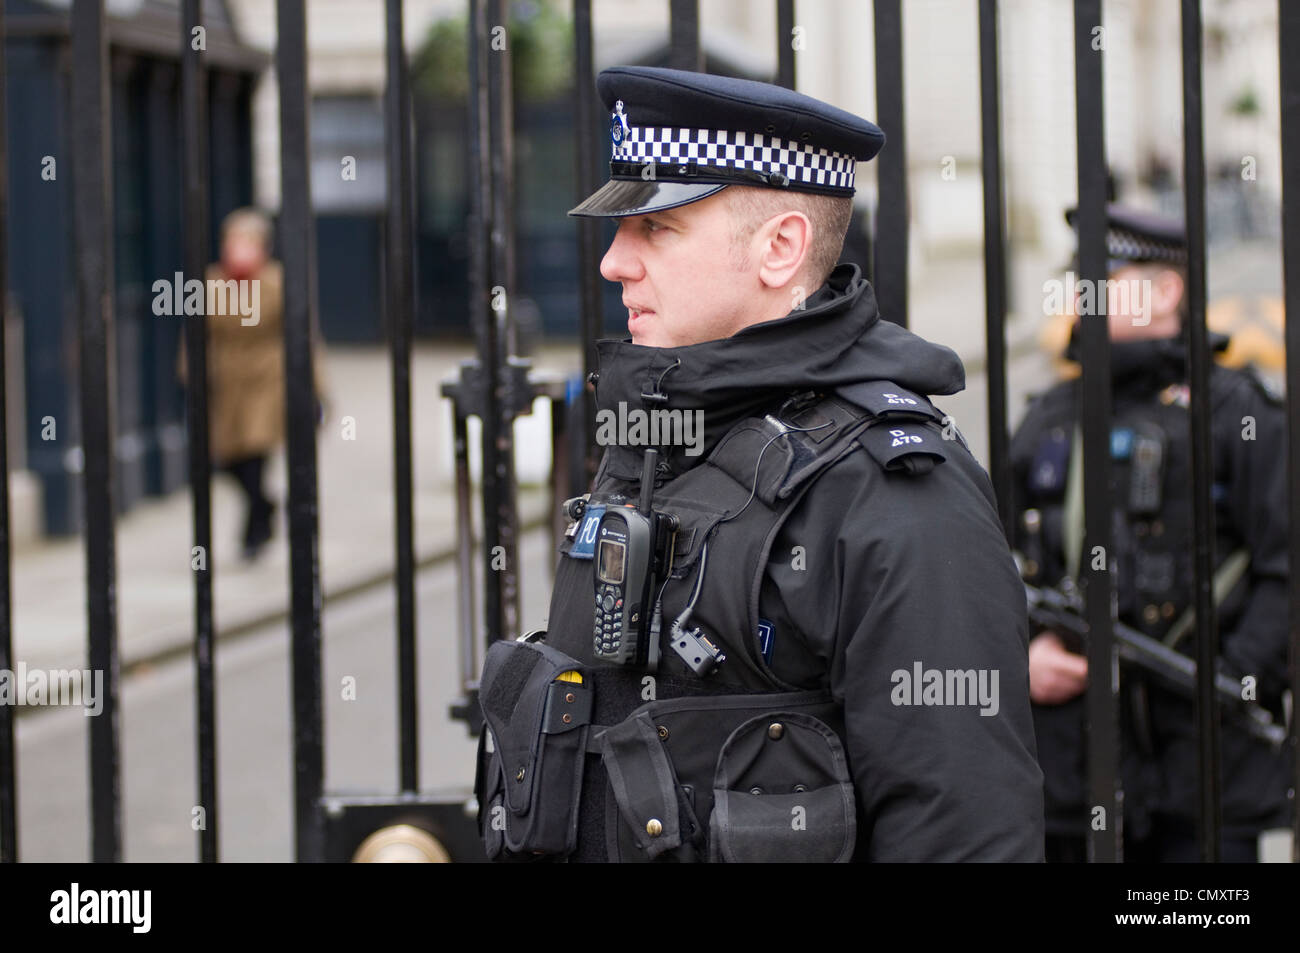 Armed police officers on patrol in Downing Street, London, England, UK Stock Photo